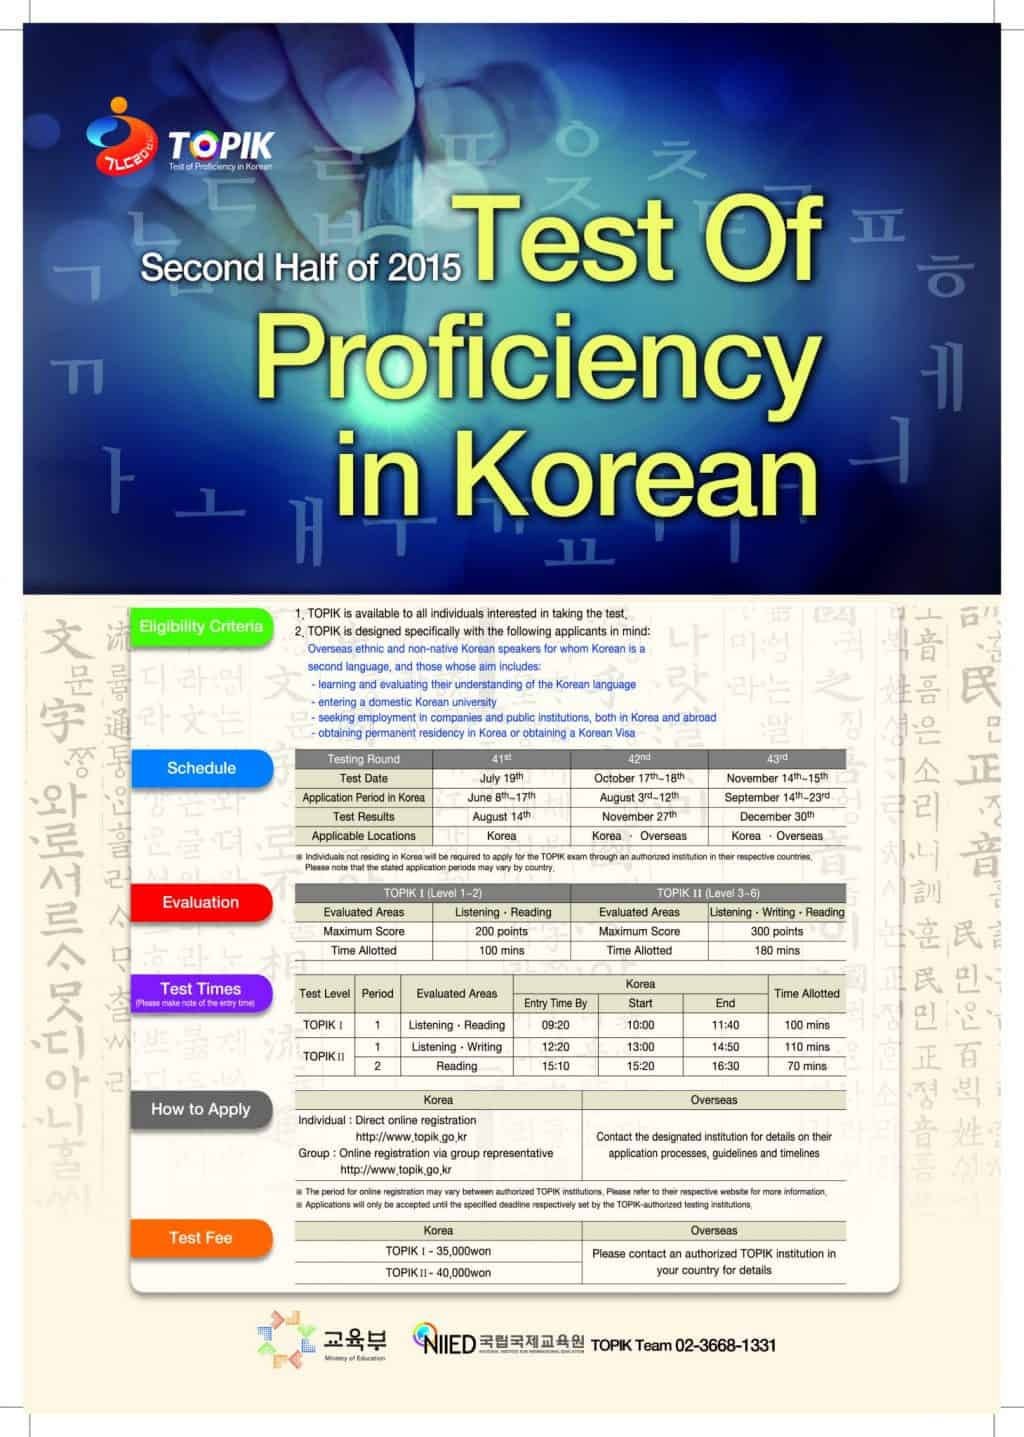 TOPIK Test in the Second Half of 2015 - Poster